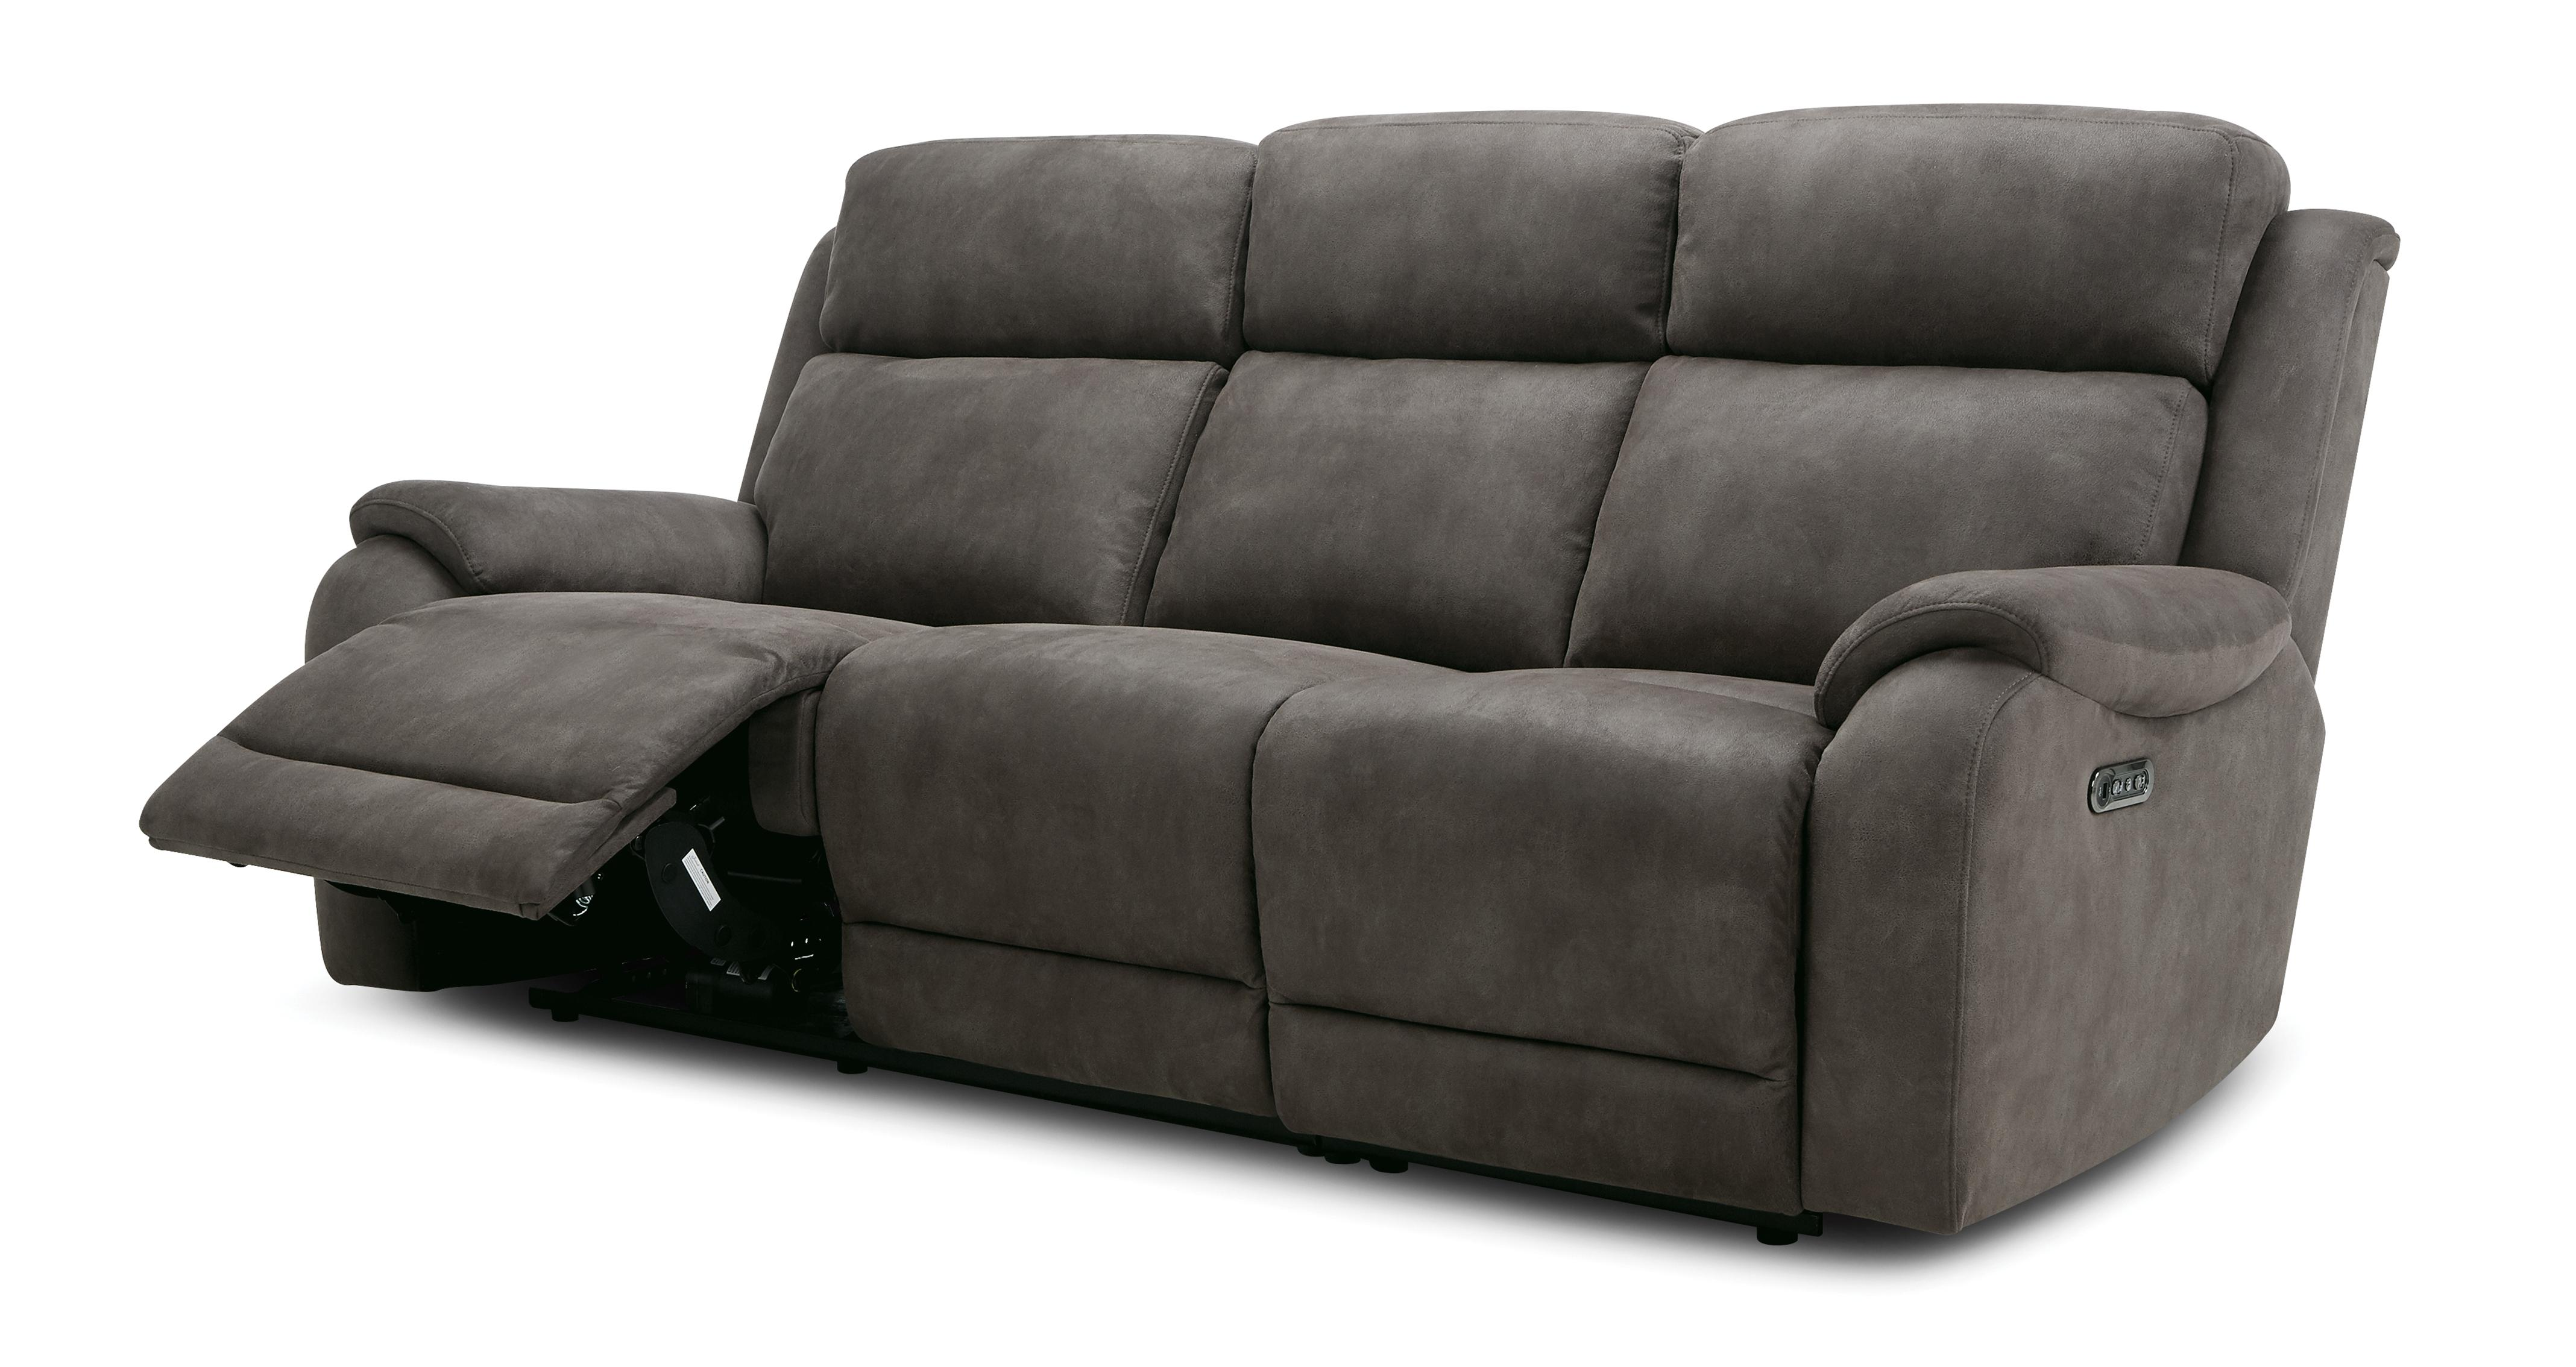 Sensational Strata Fabric 3 Seater Power Plus Recliner Sofa Prestige Dfs Gamerscity Chair Design For Home Gamerscityorg